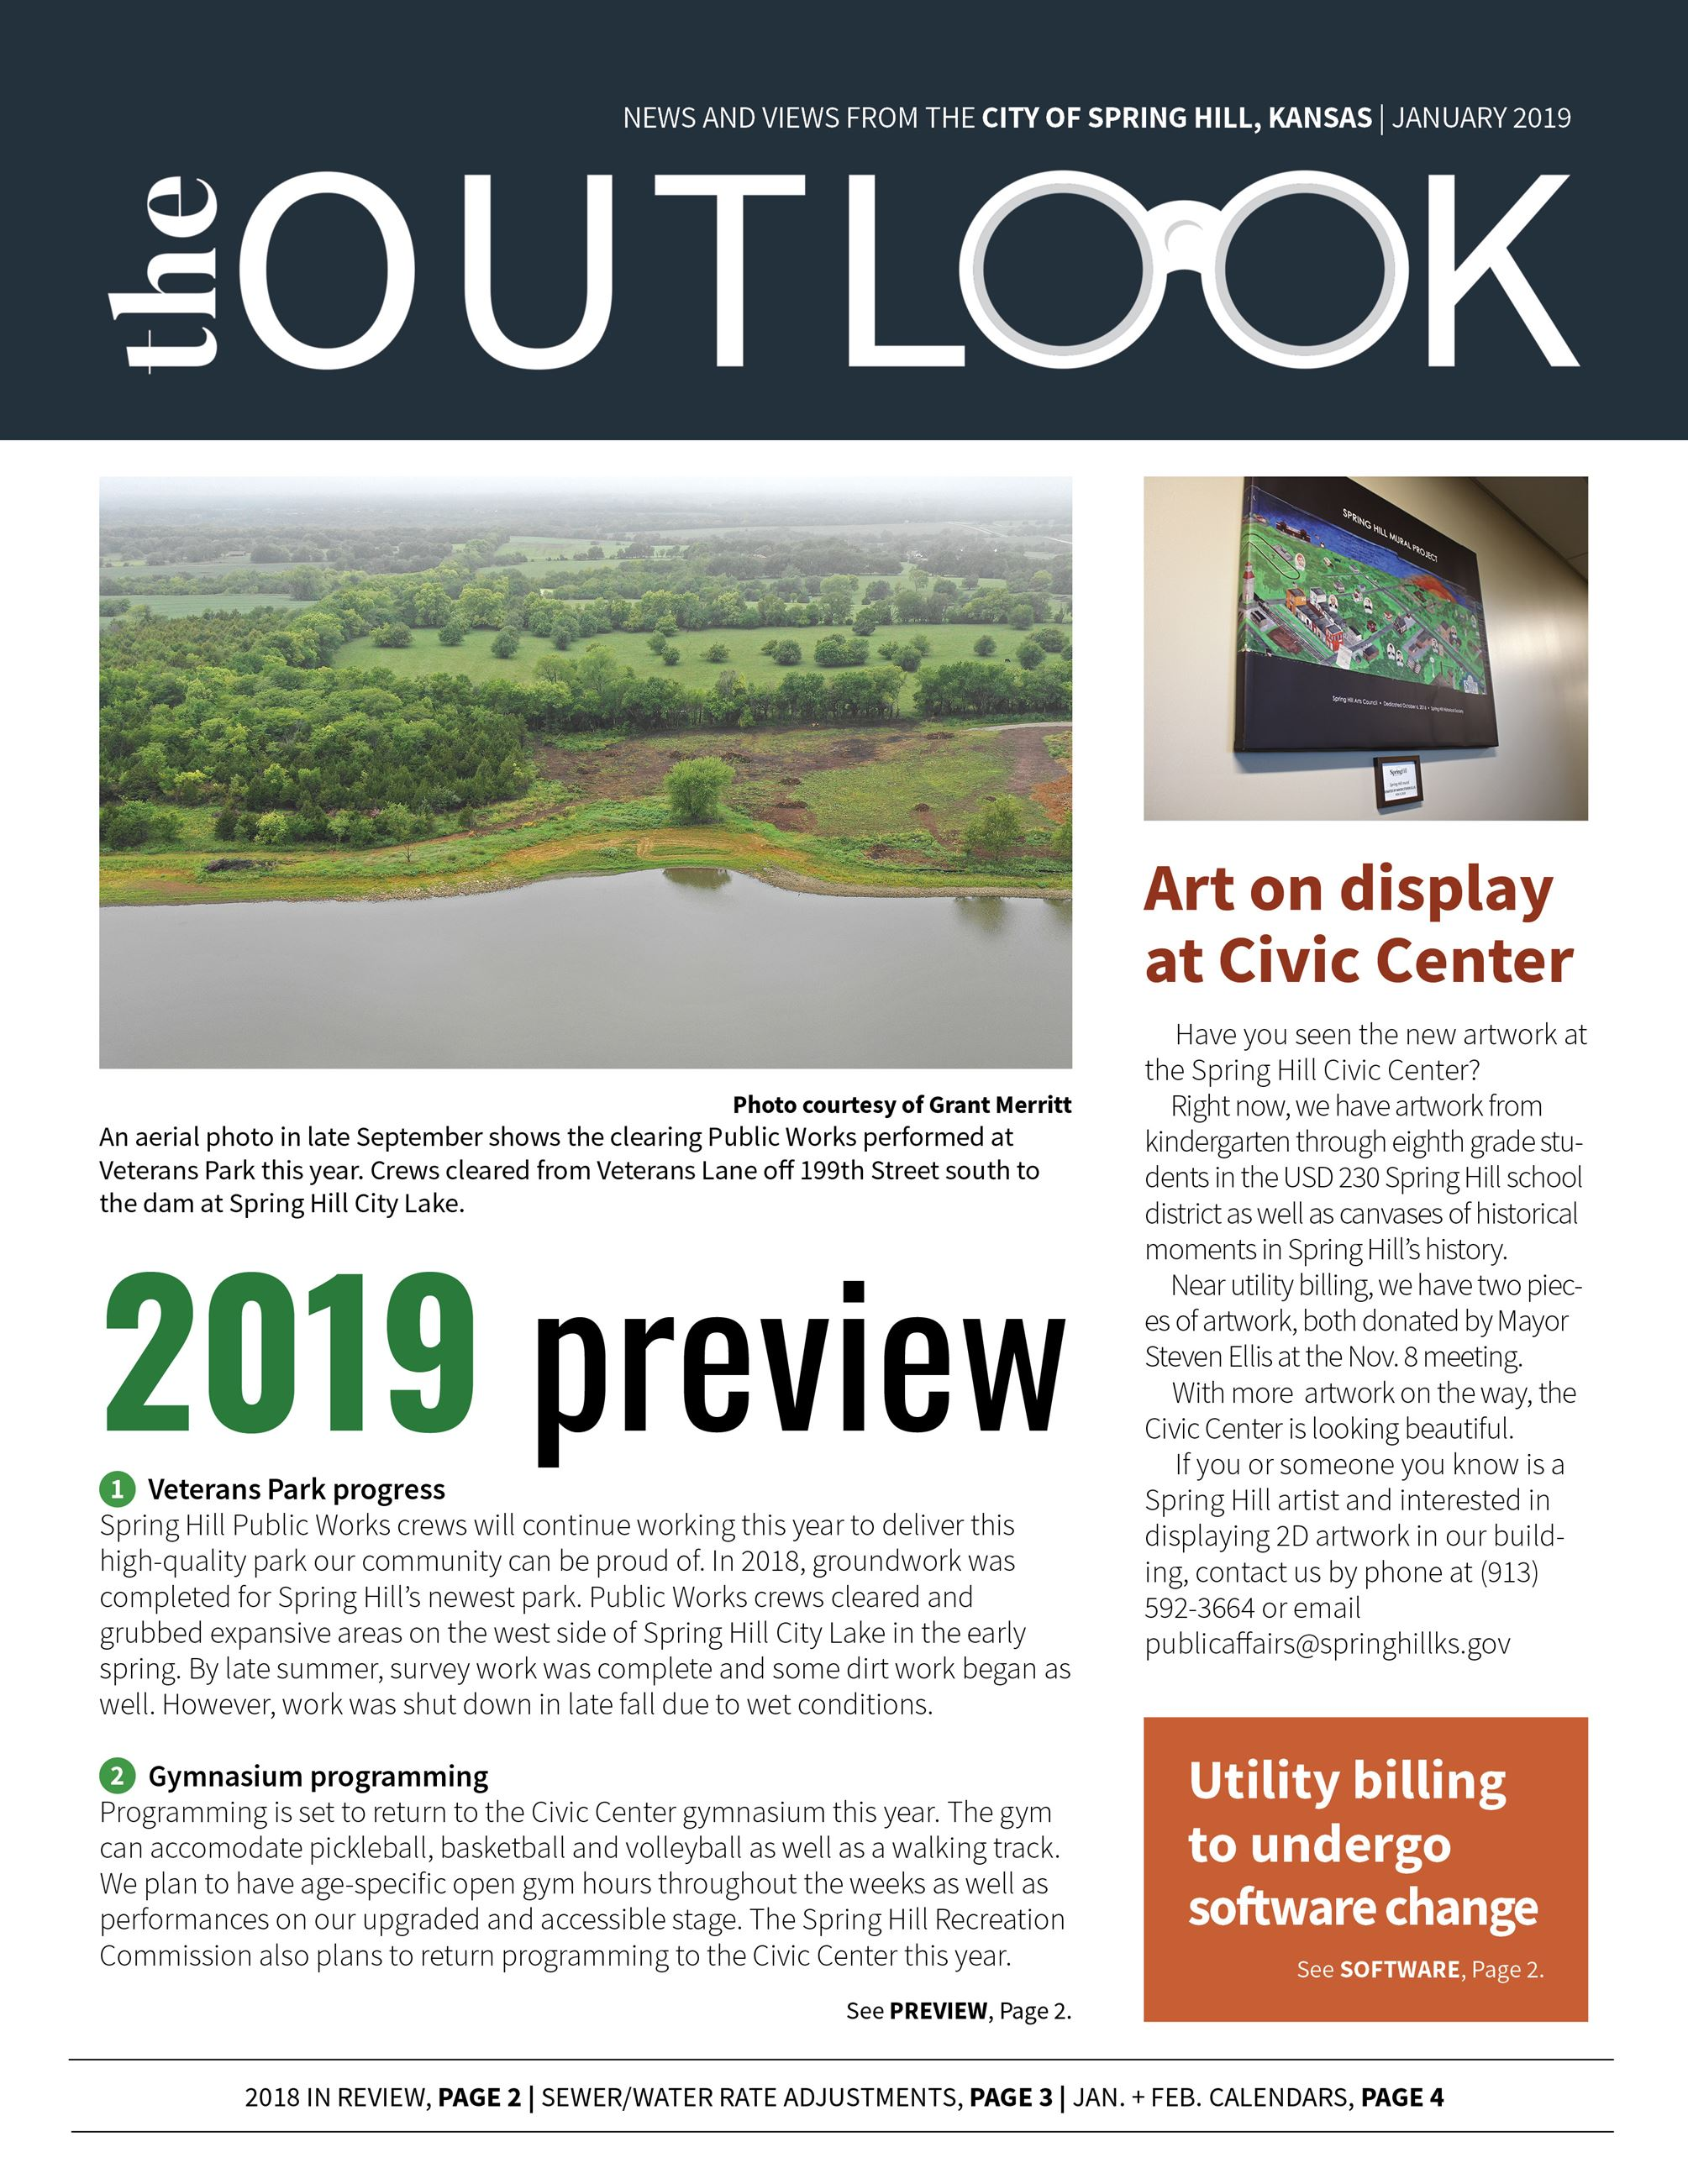 Front page of the January 2019 newsletter featuring a 2019 preview, utility billing software upgrade